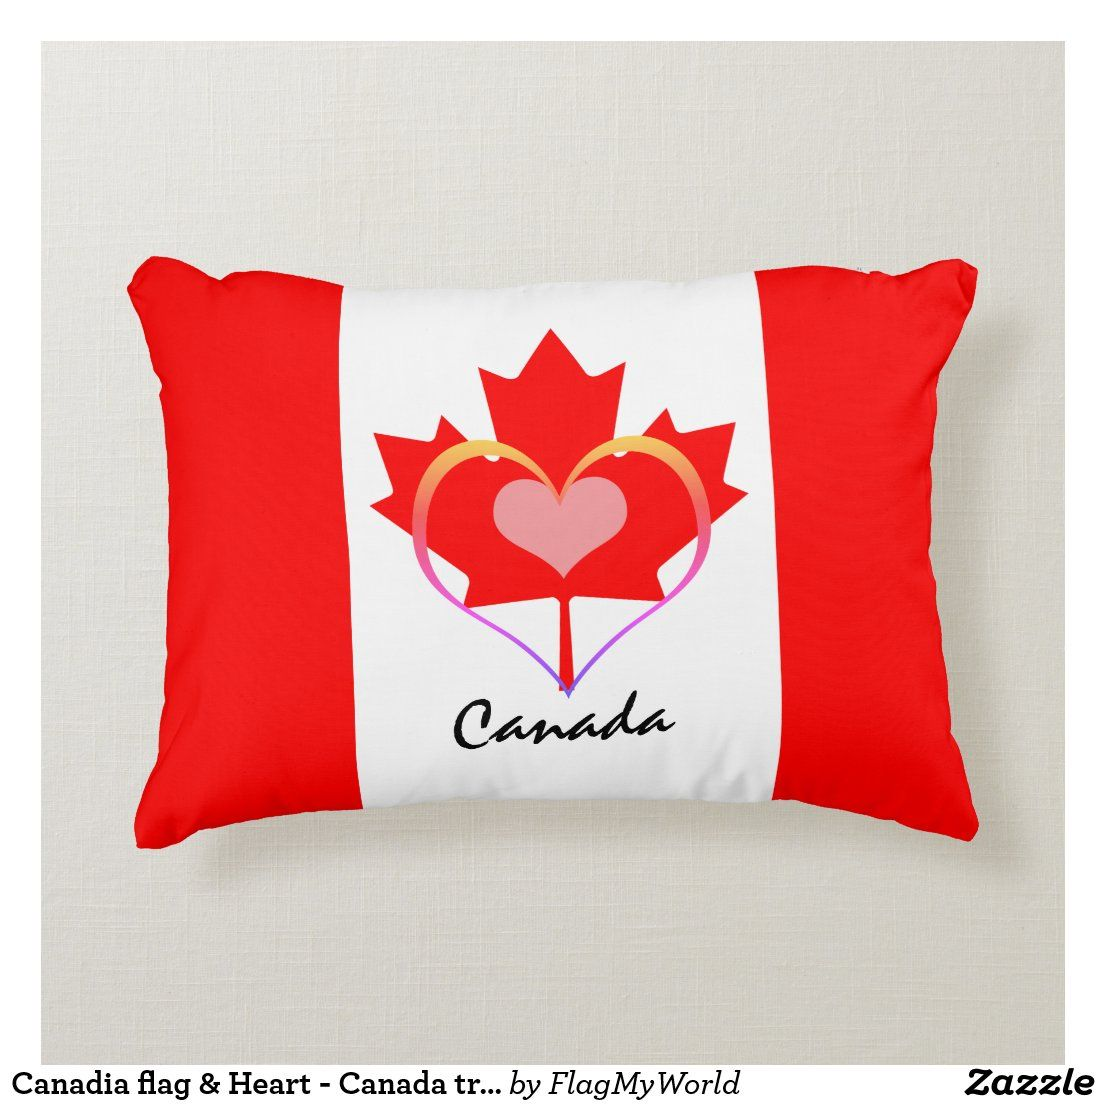 Canadia flag & Heart Canada travel /sports fans Accent